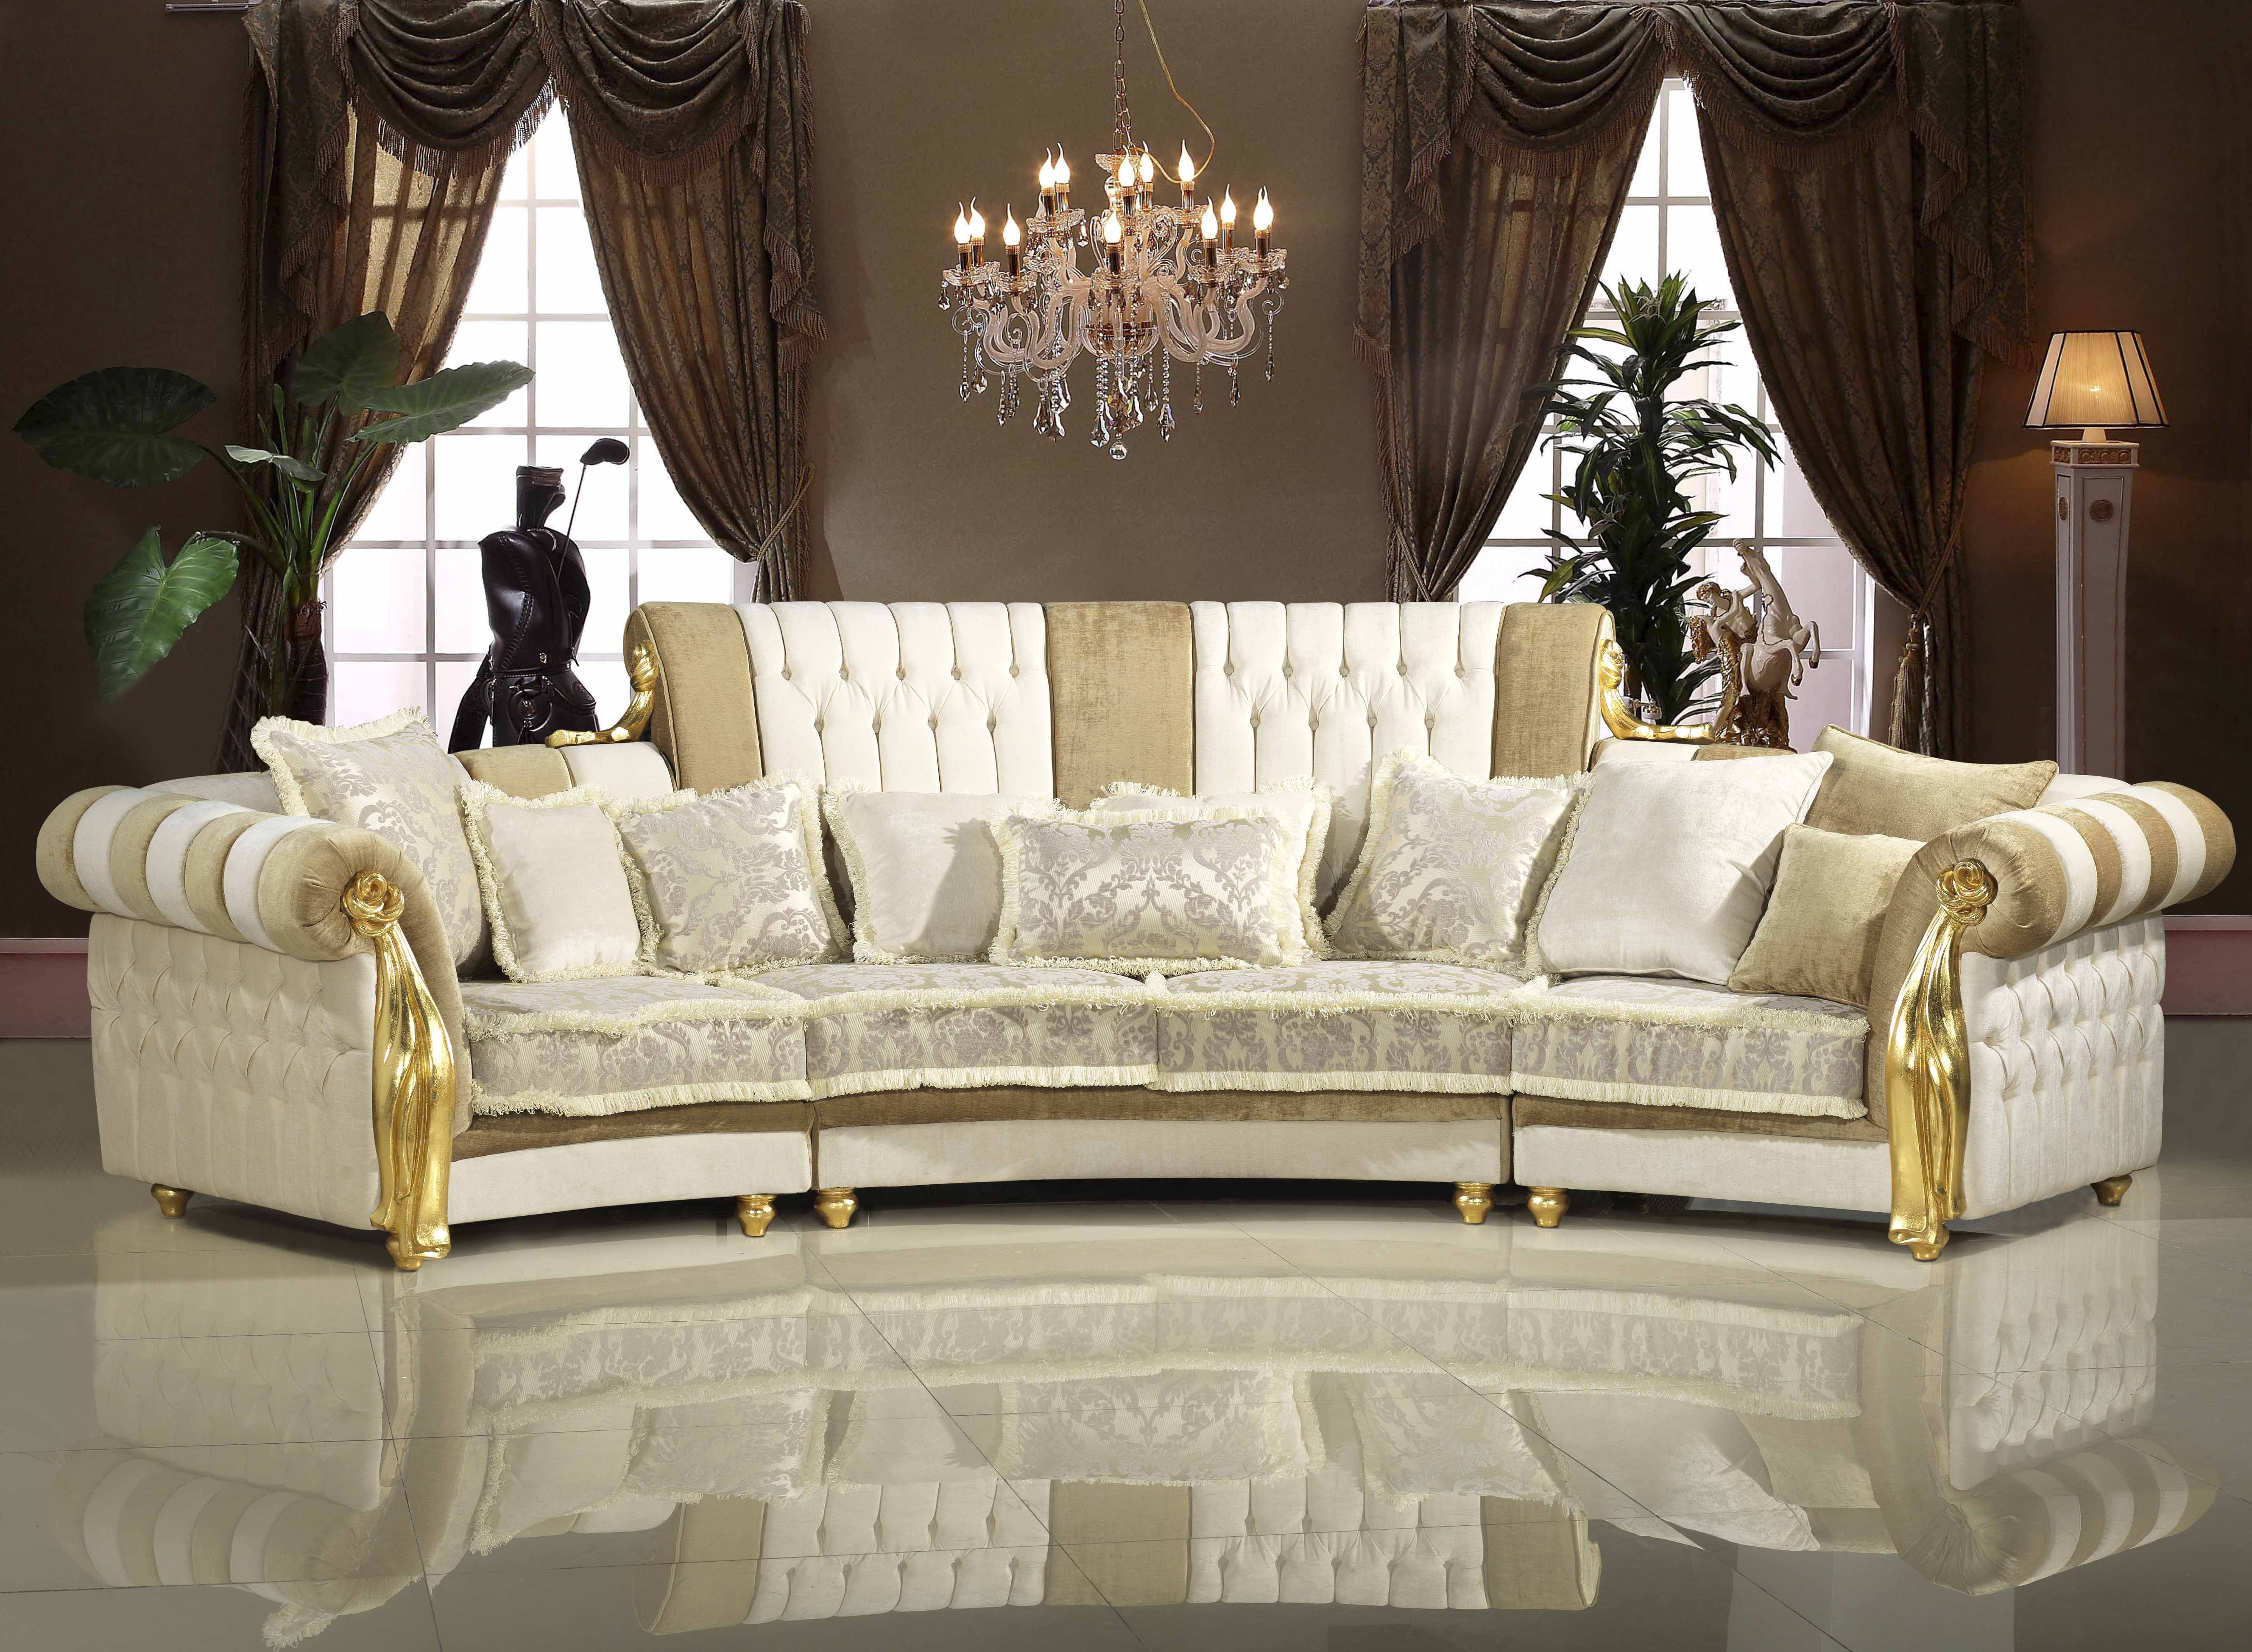 Most Expensive Couch In 2020 Luxury Living Room Leather Chair Living Room Luxury Furniture Living Room